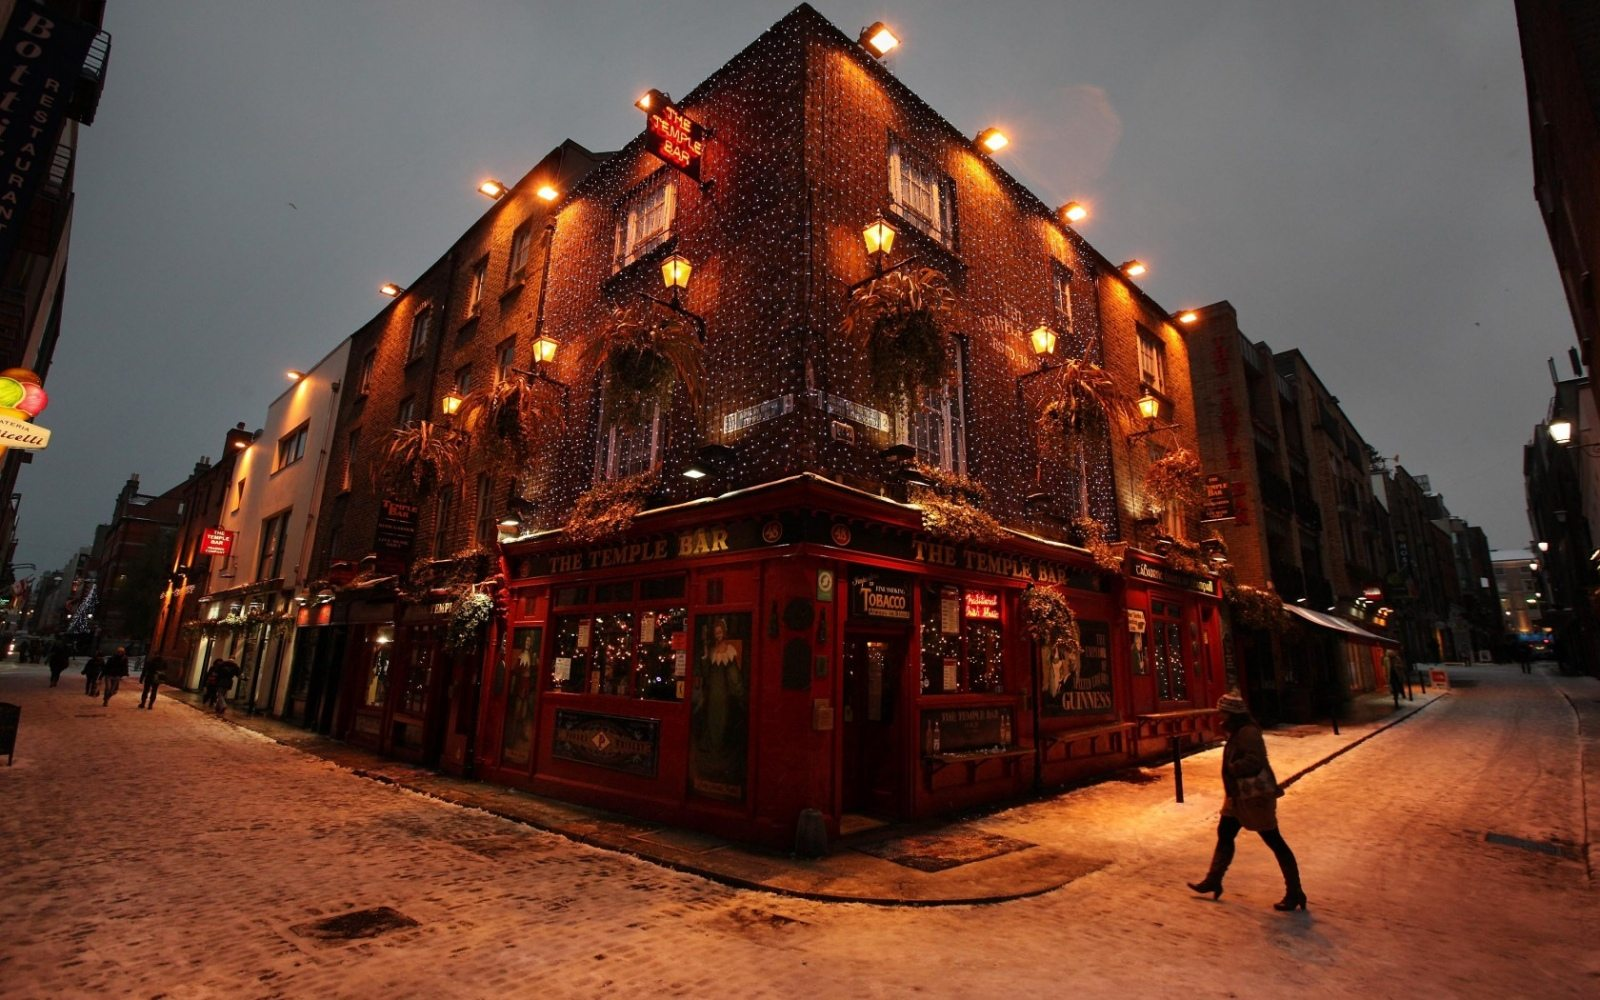 Temple Bar Treasure Hunt for New Year's